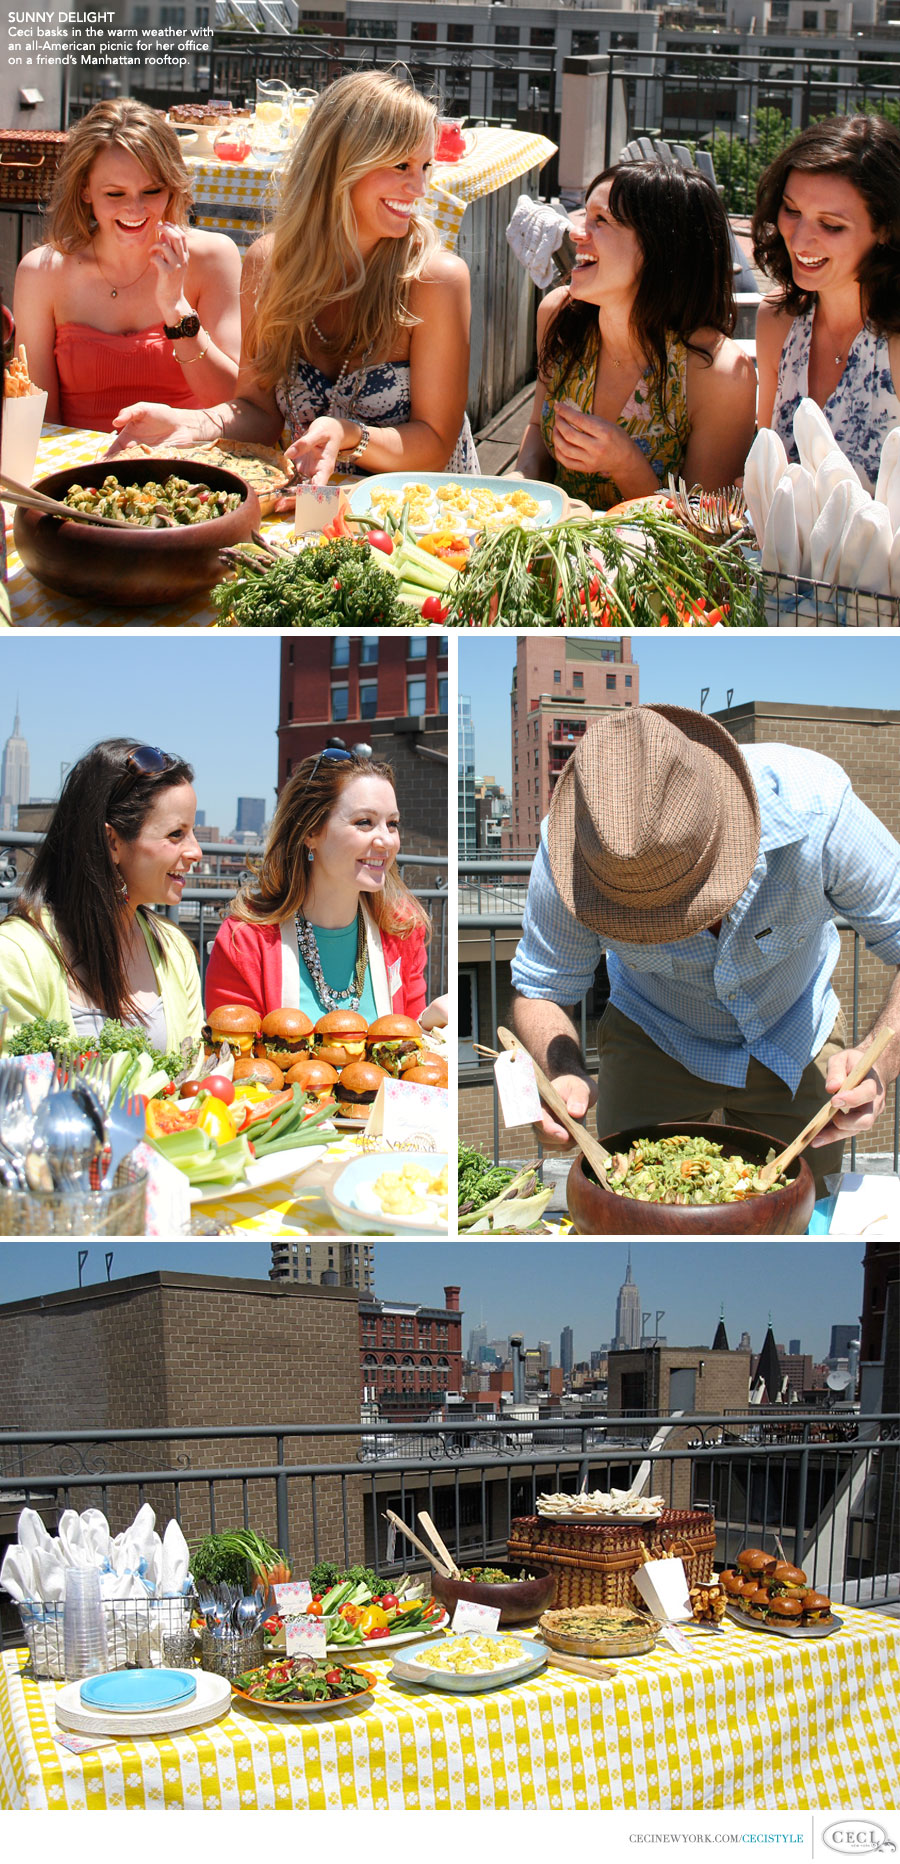 Ceci Johnson of Ceci New York - SUNNY DELIGHT: Ceci basks in the warm weather with an all-American picnic on a friend's Manhattan roof.